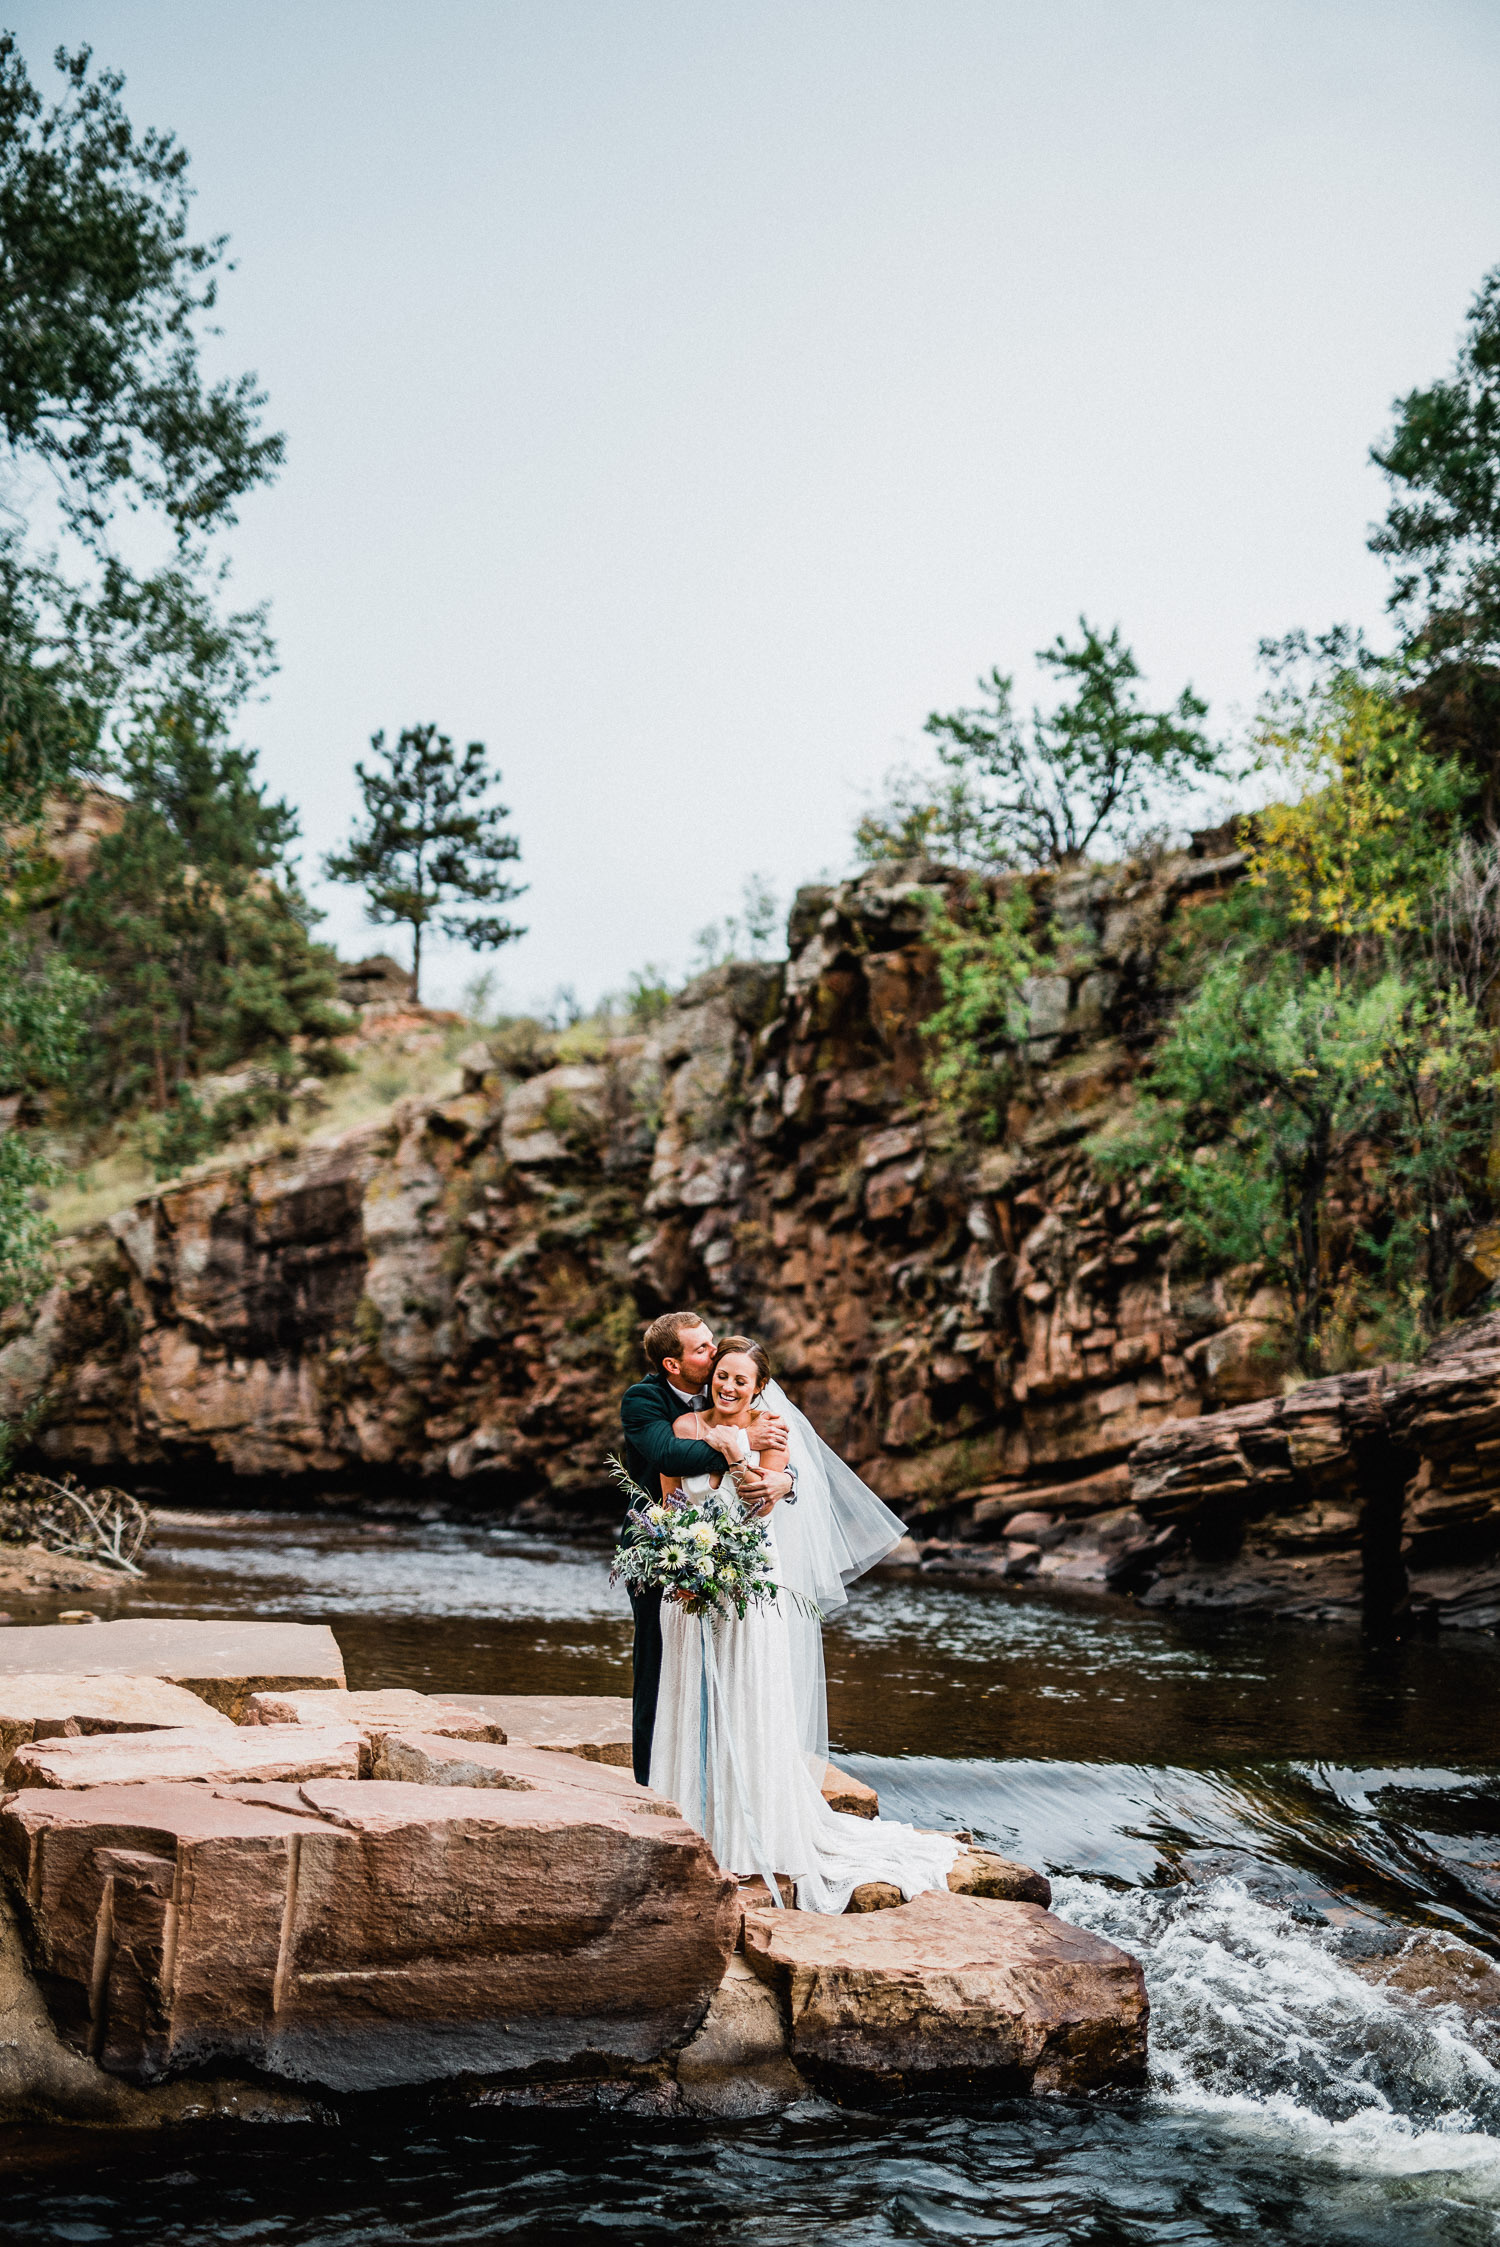 wedding portrait on the river at the river bend in lyons colorado